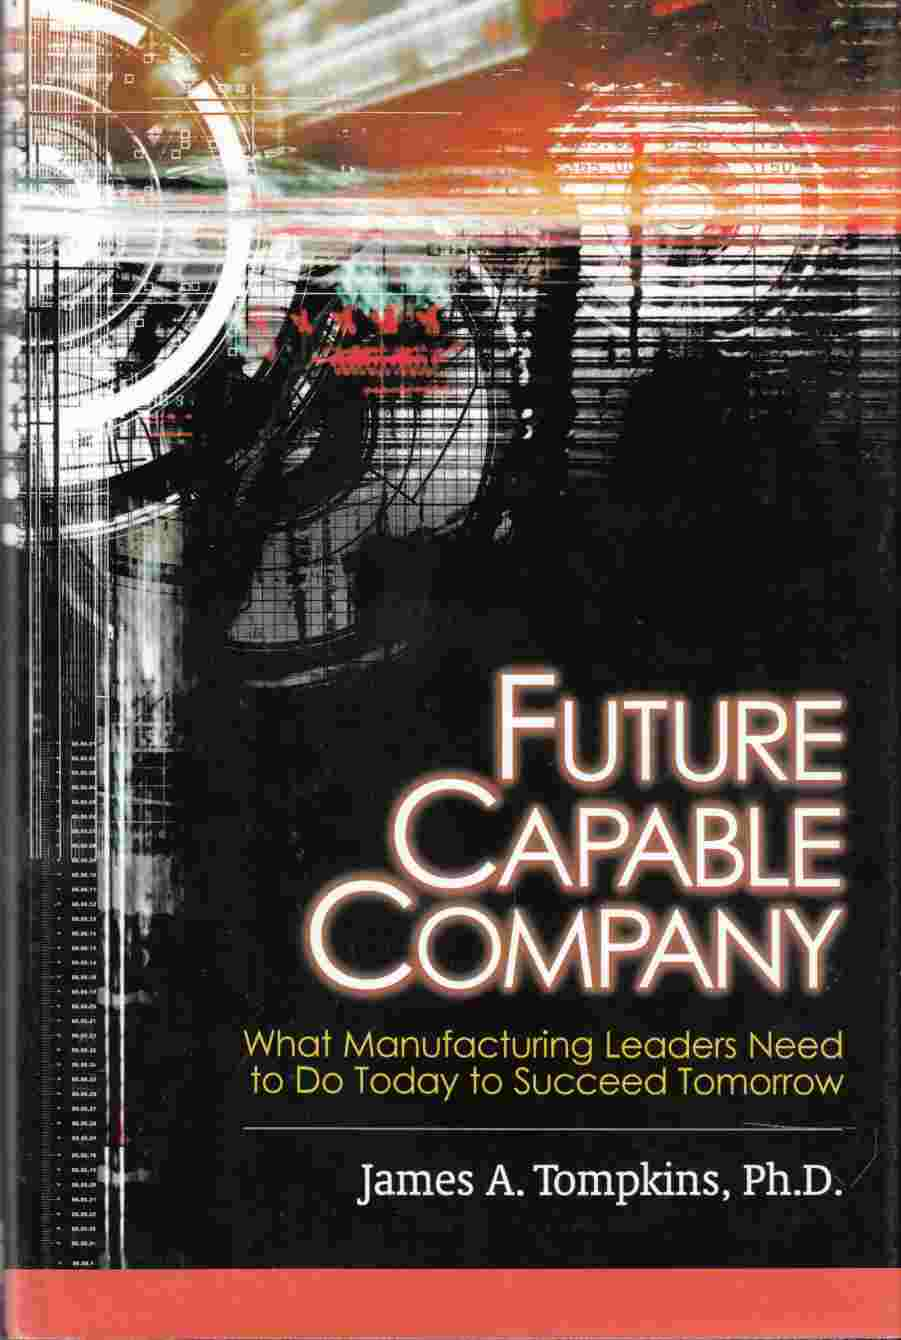 Image for Future Capable Company What Manufacturing Leaders Need to Do Today to Succeed Tomorrow